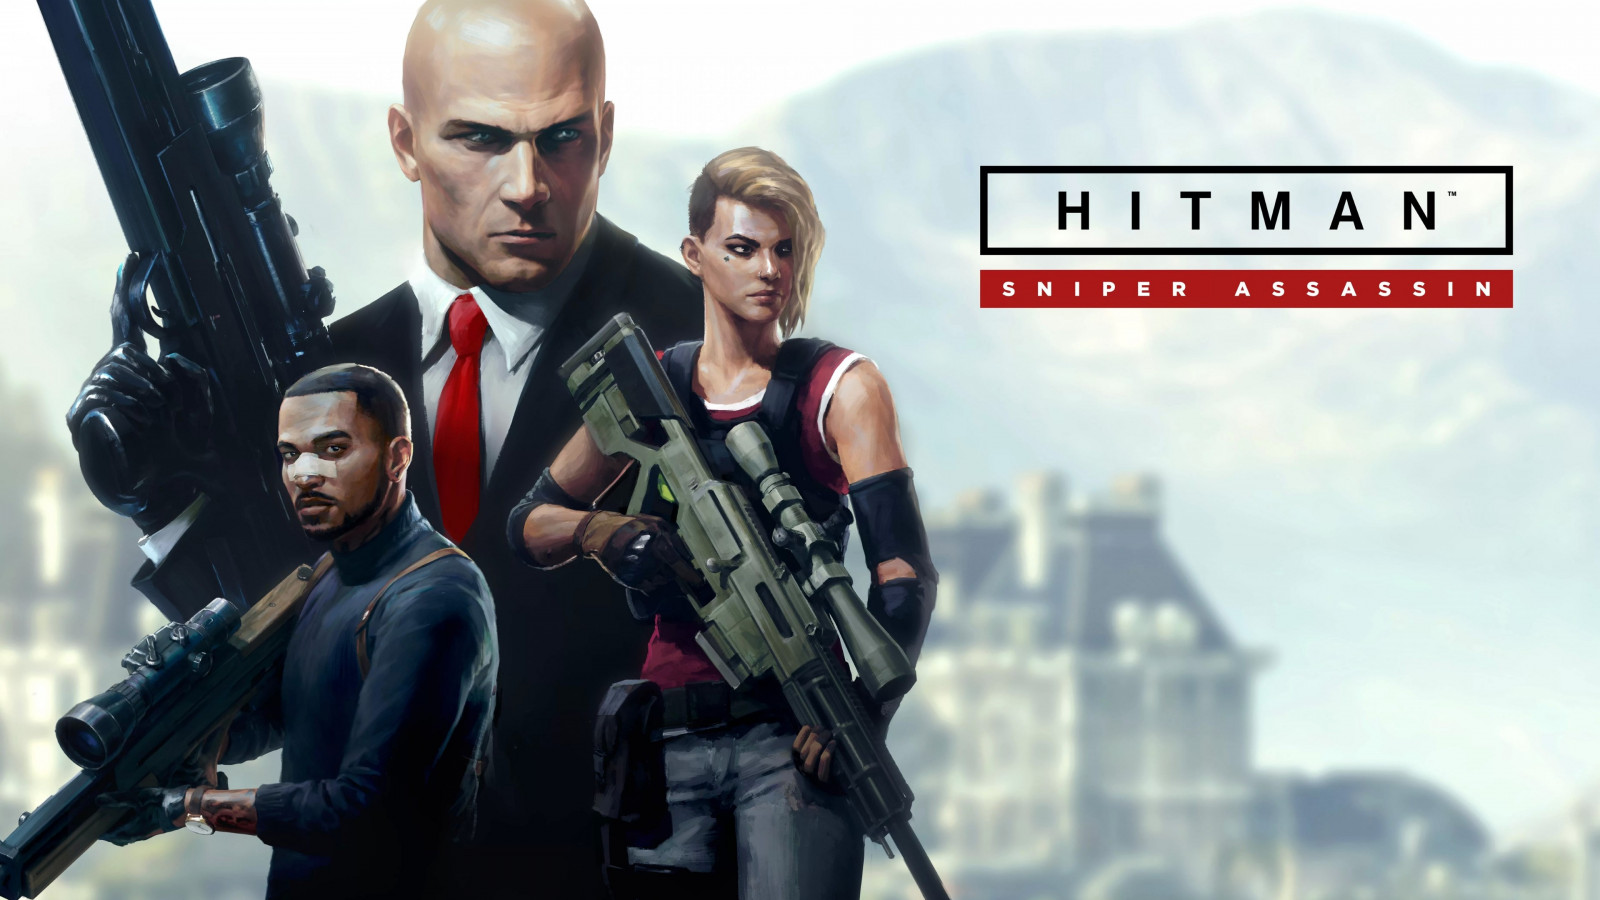 Hitman Sniper Assassin | 1600x900 wallpaper